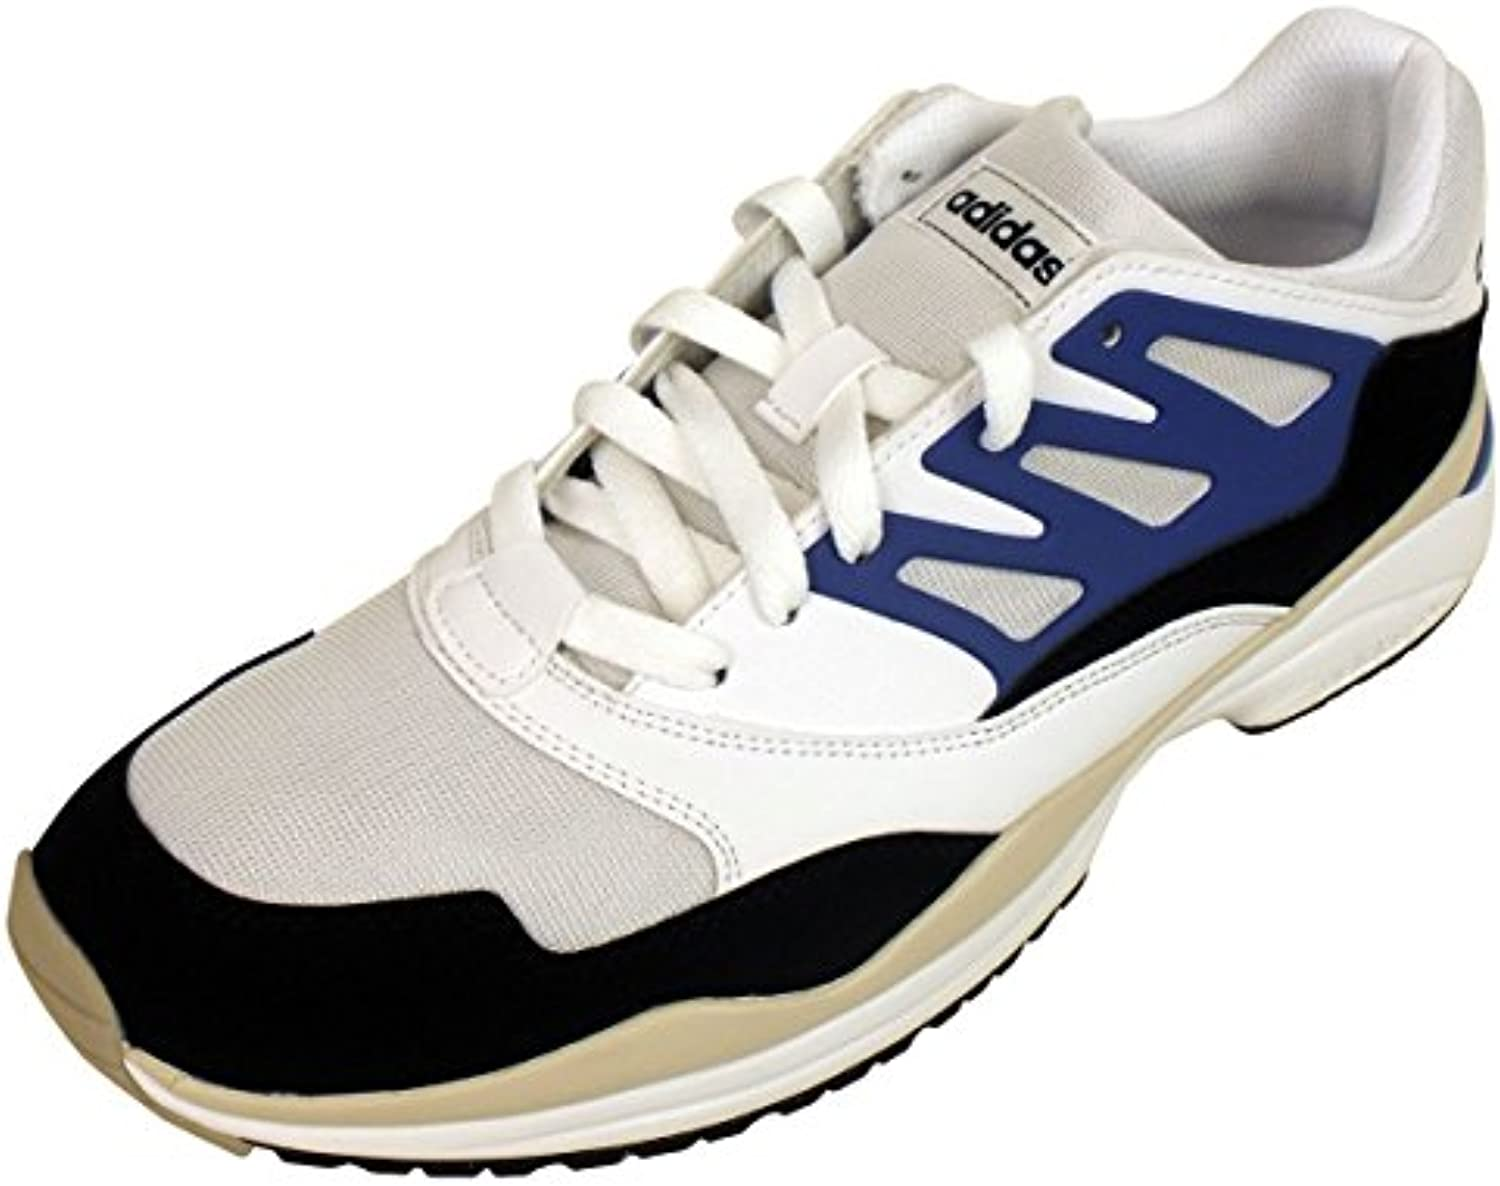 Adidas Originals Torsion Allegra X Men's Sneaker Laufschuhe Q20336 Sneaker